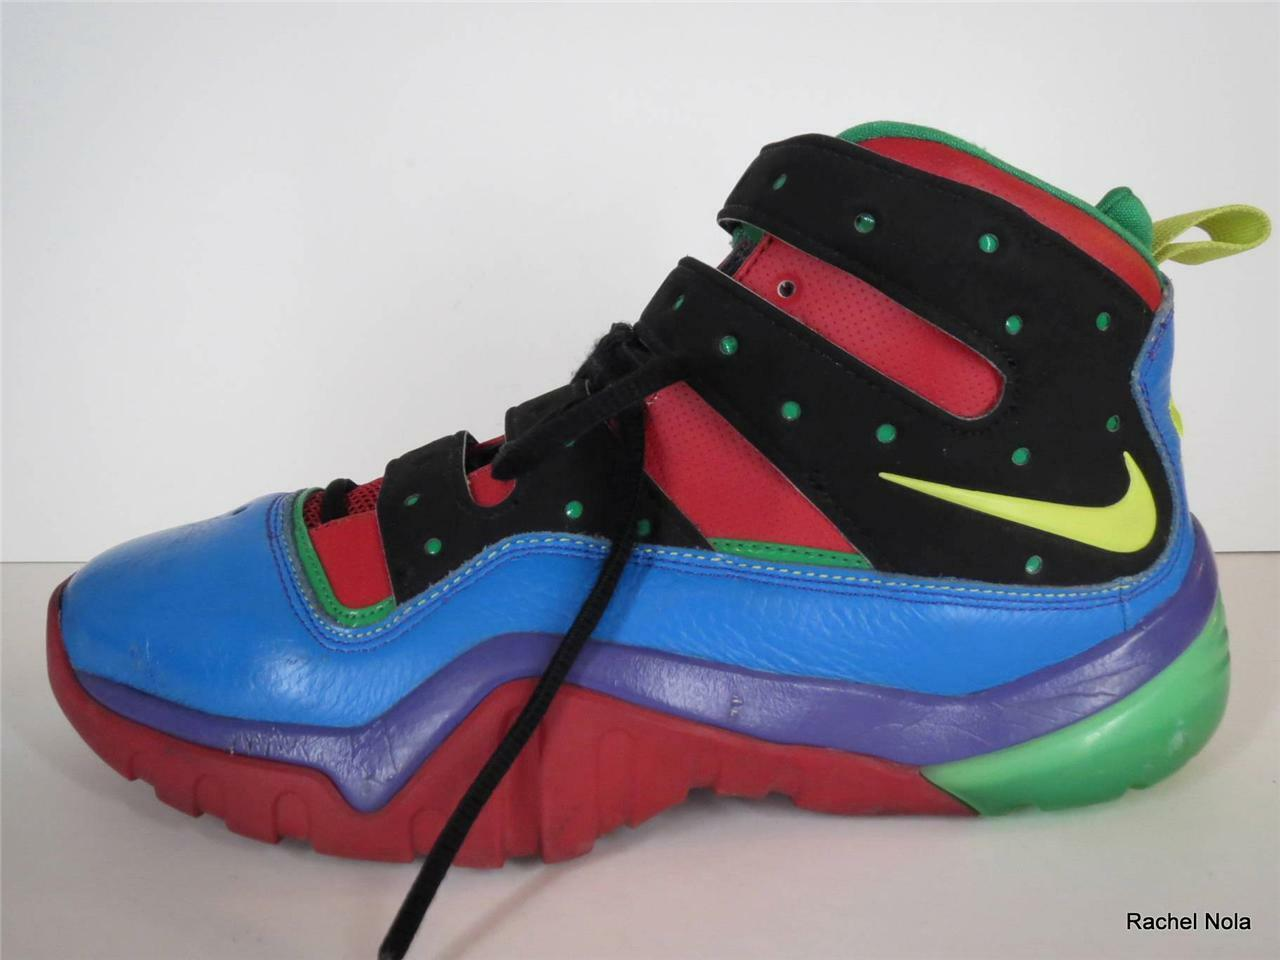 Nike Sneakers 9.5 ID Remix Mens Size 9.5 Sneakers Retro Colorful Blue Red Green High Top d2fd23